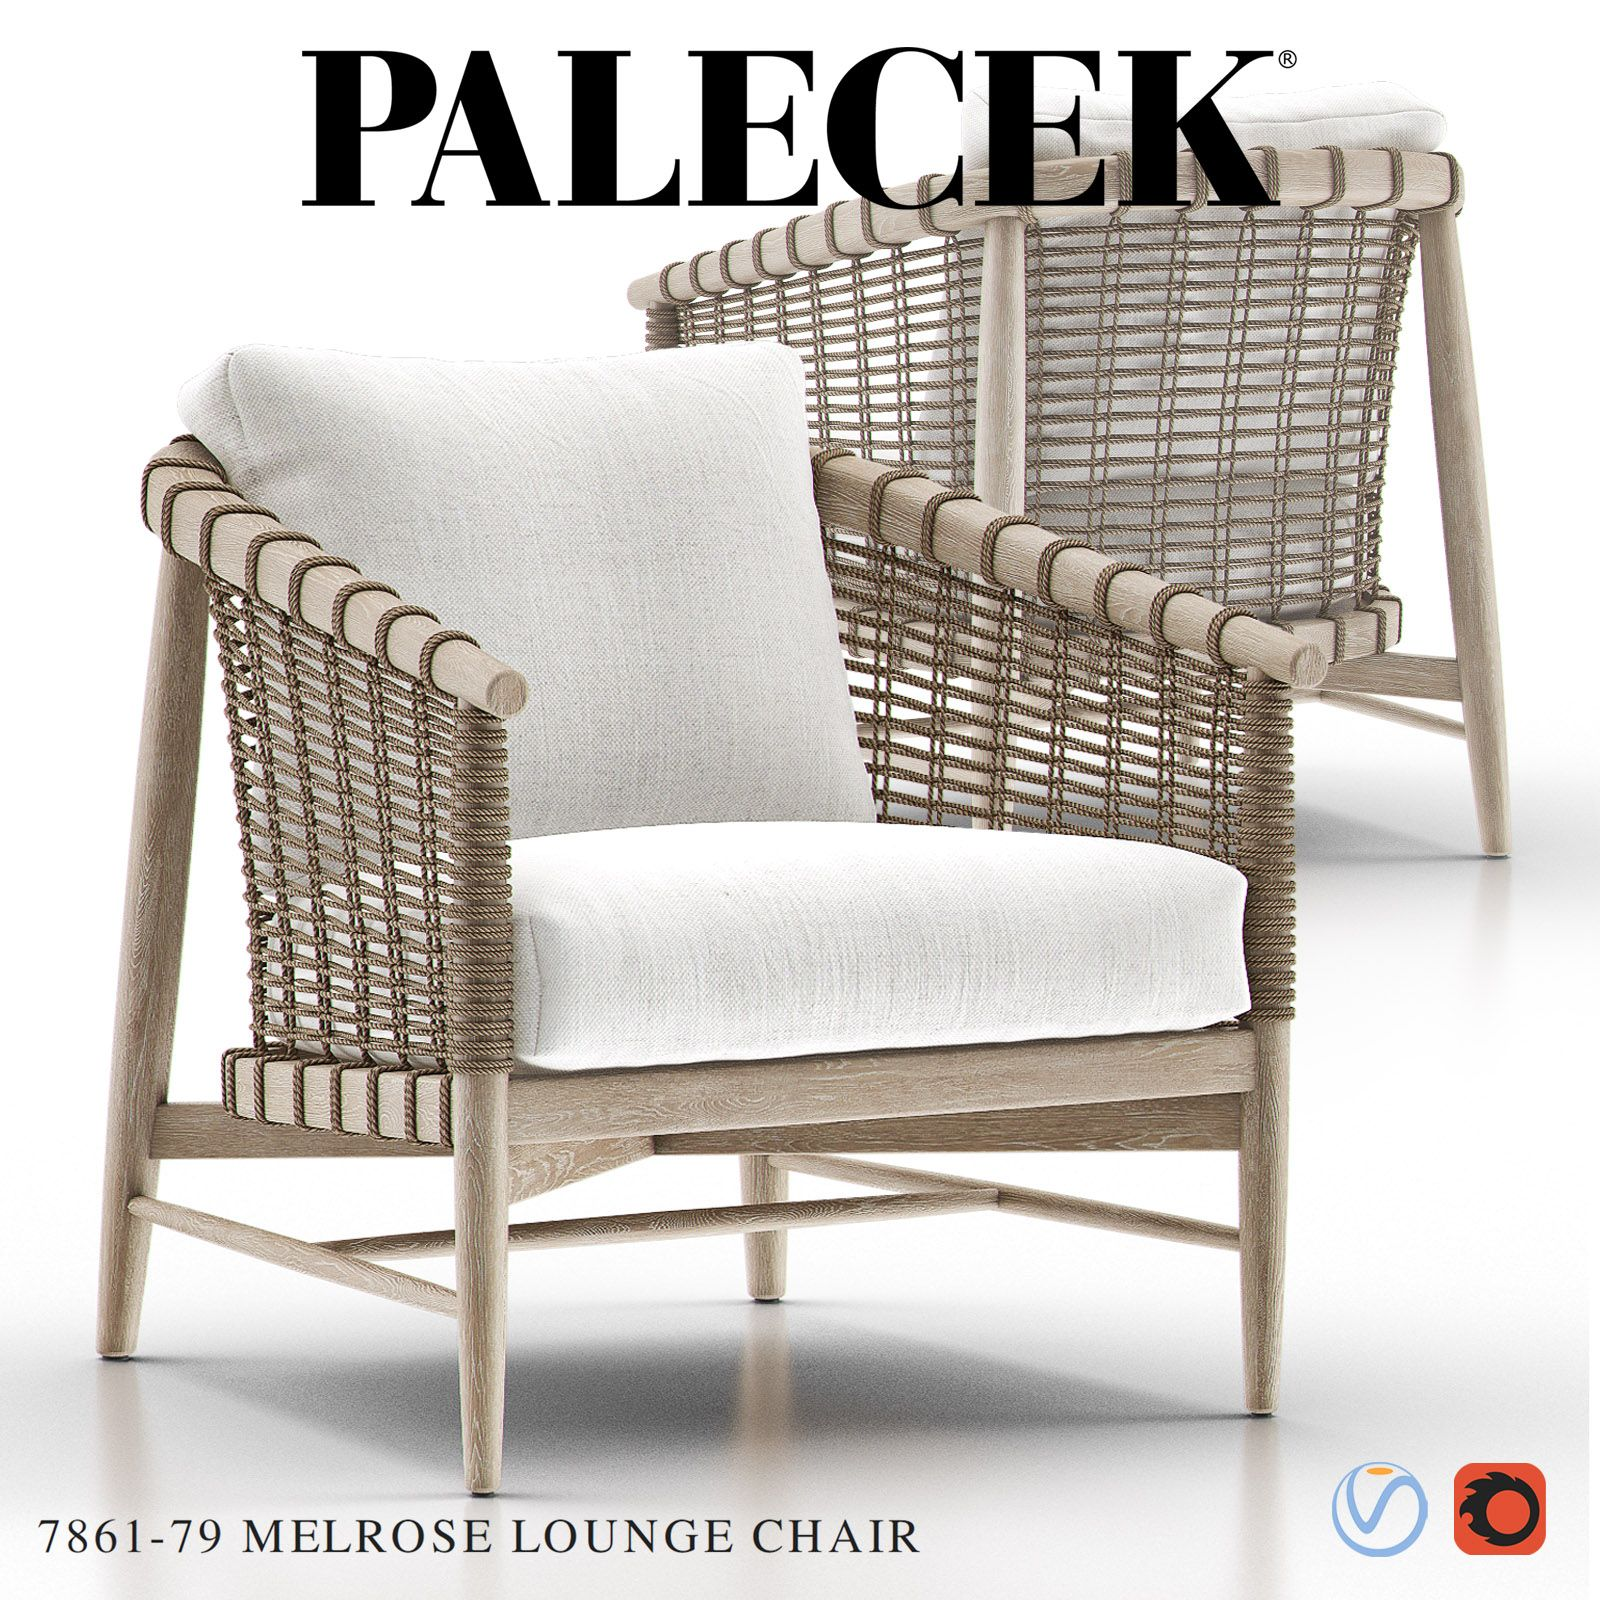 Melrose Lounge Chair from Palecek Jeffrey Alan Marks